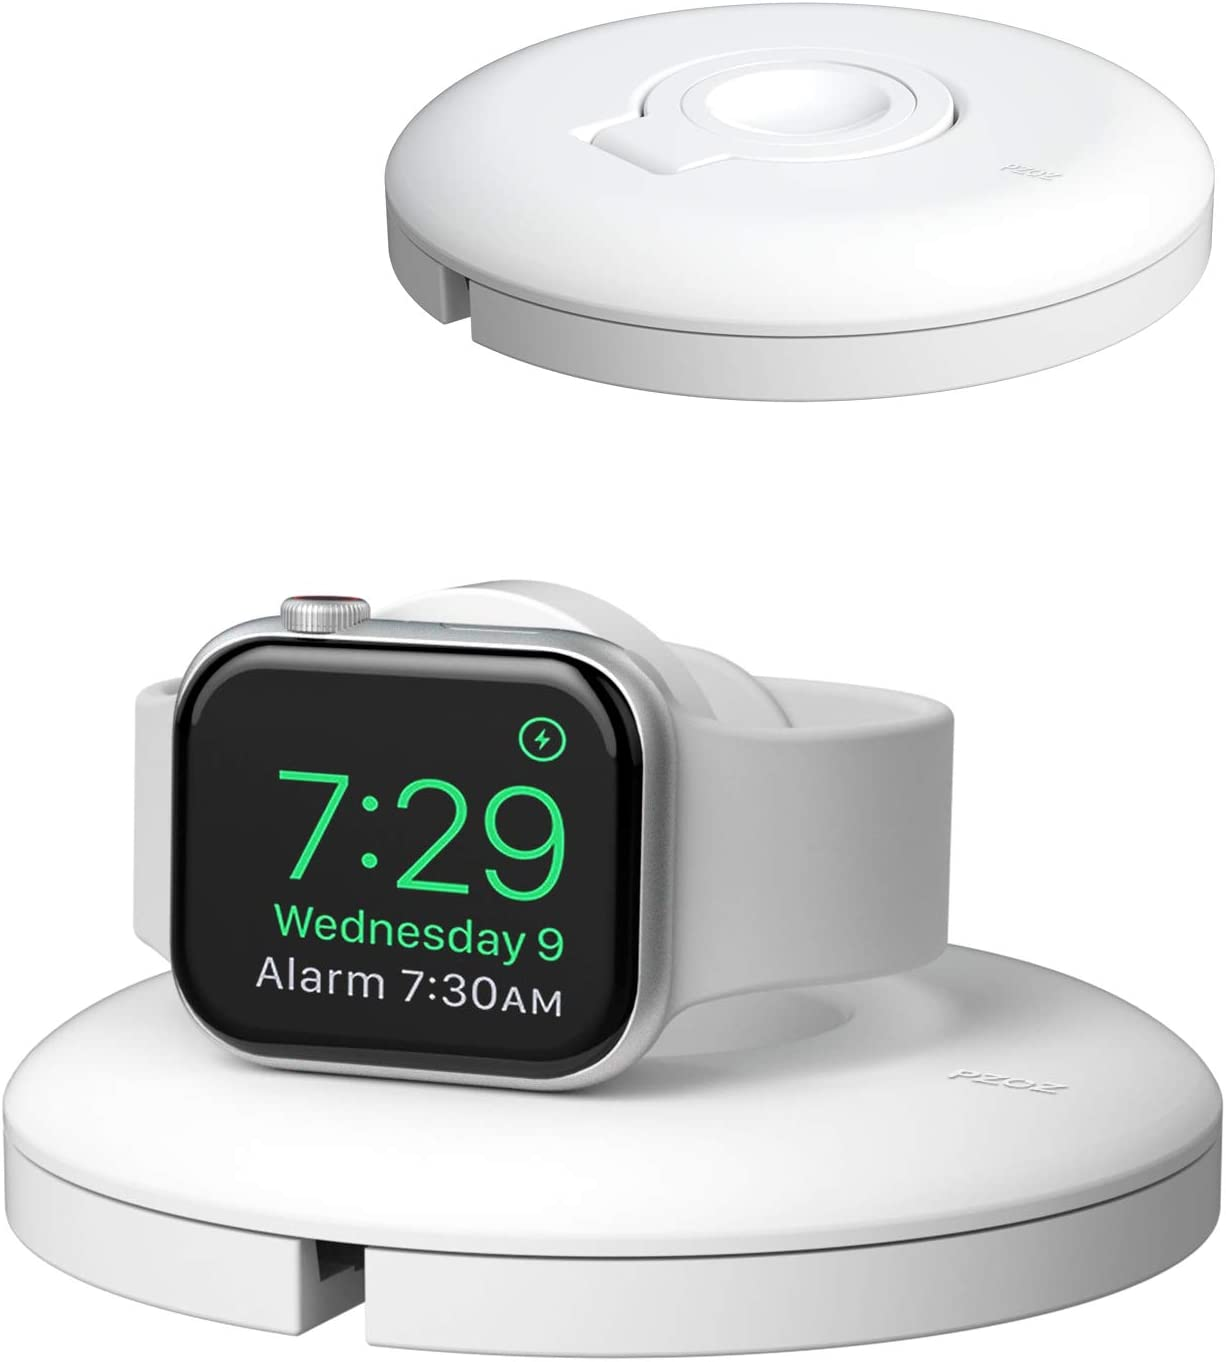 PZOZ Charger Stand Compatible for Apple Watch, Portable Charging Station Cable Management Dock Holder Organizer for iWatch with Band Series 6 SE 5 4 3 2 1 44mm, 42mm, 40mm, 38mm Accessories (White)